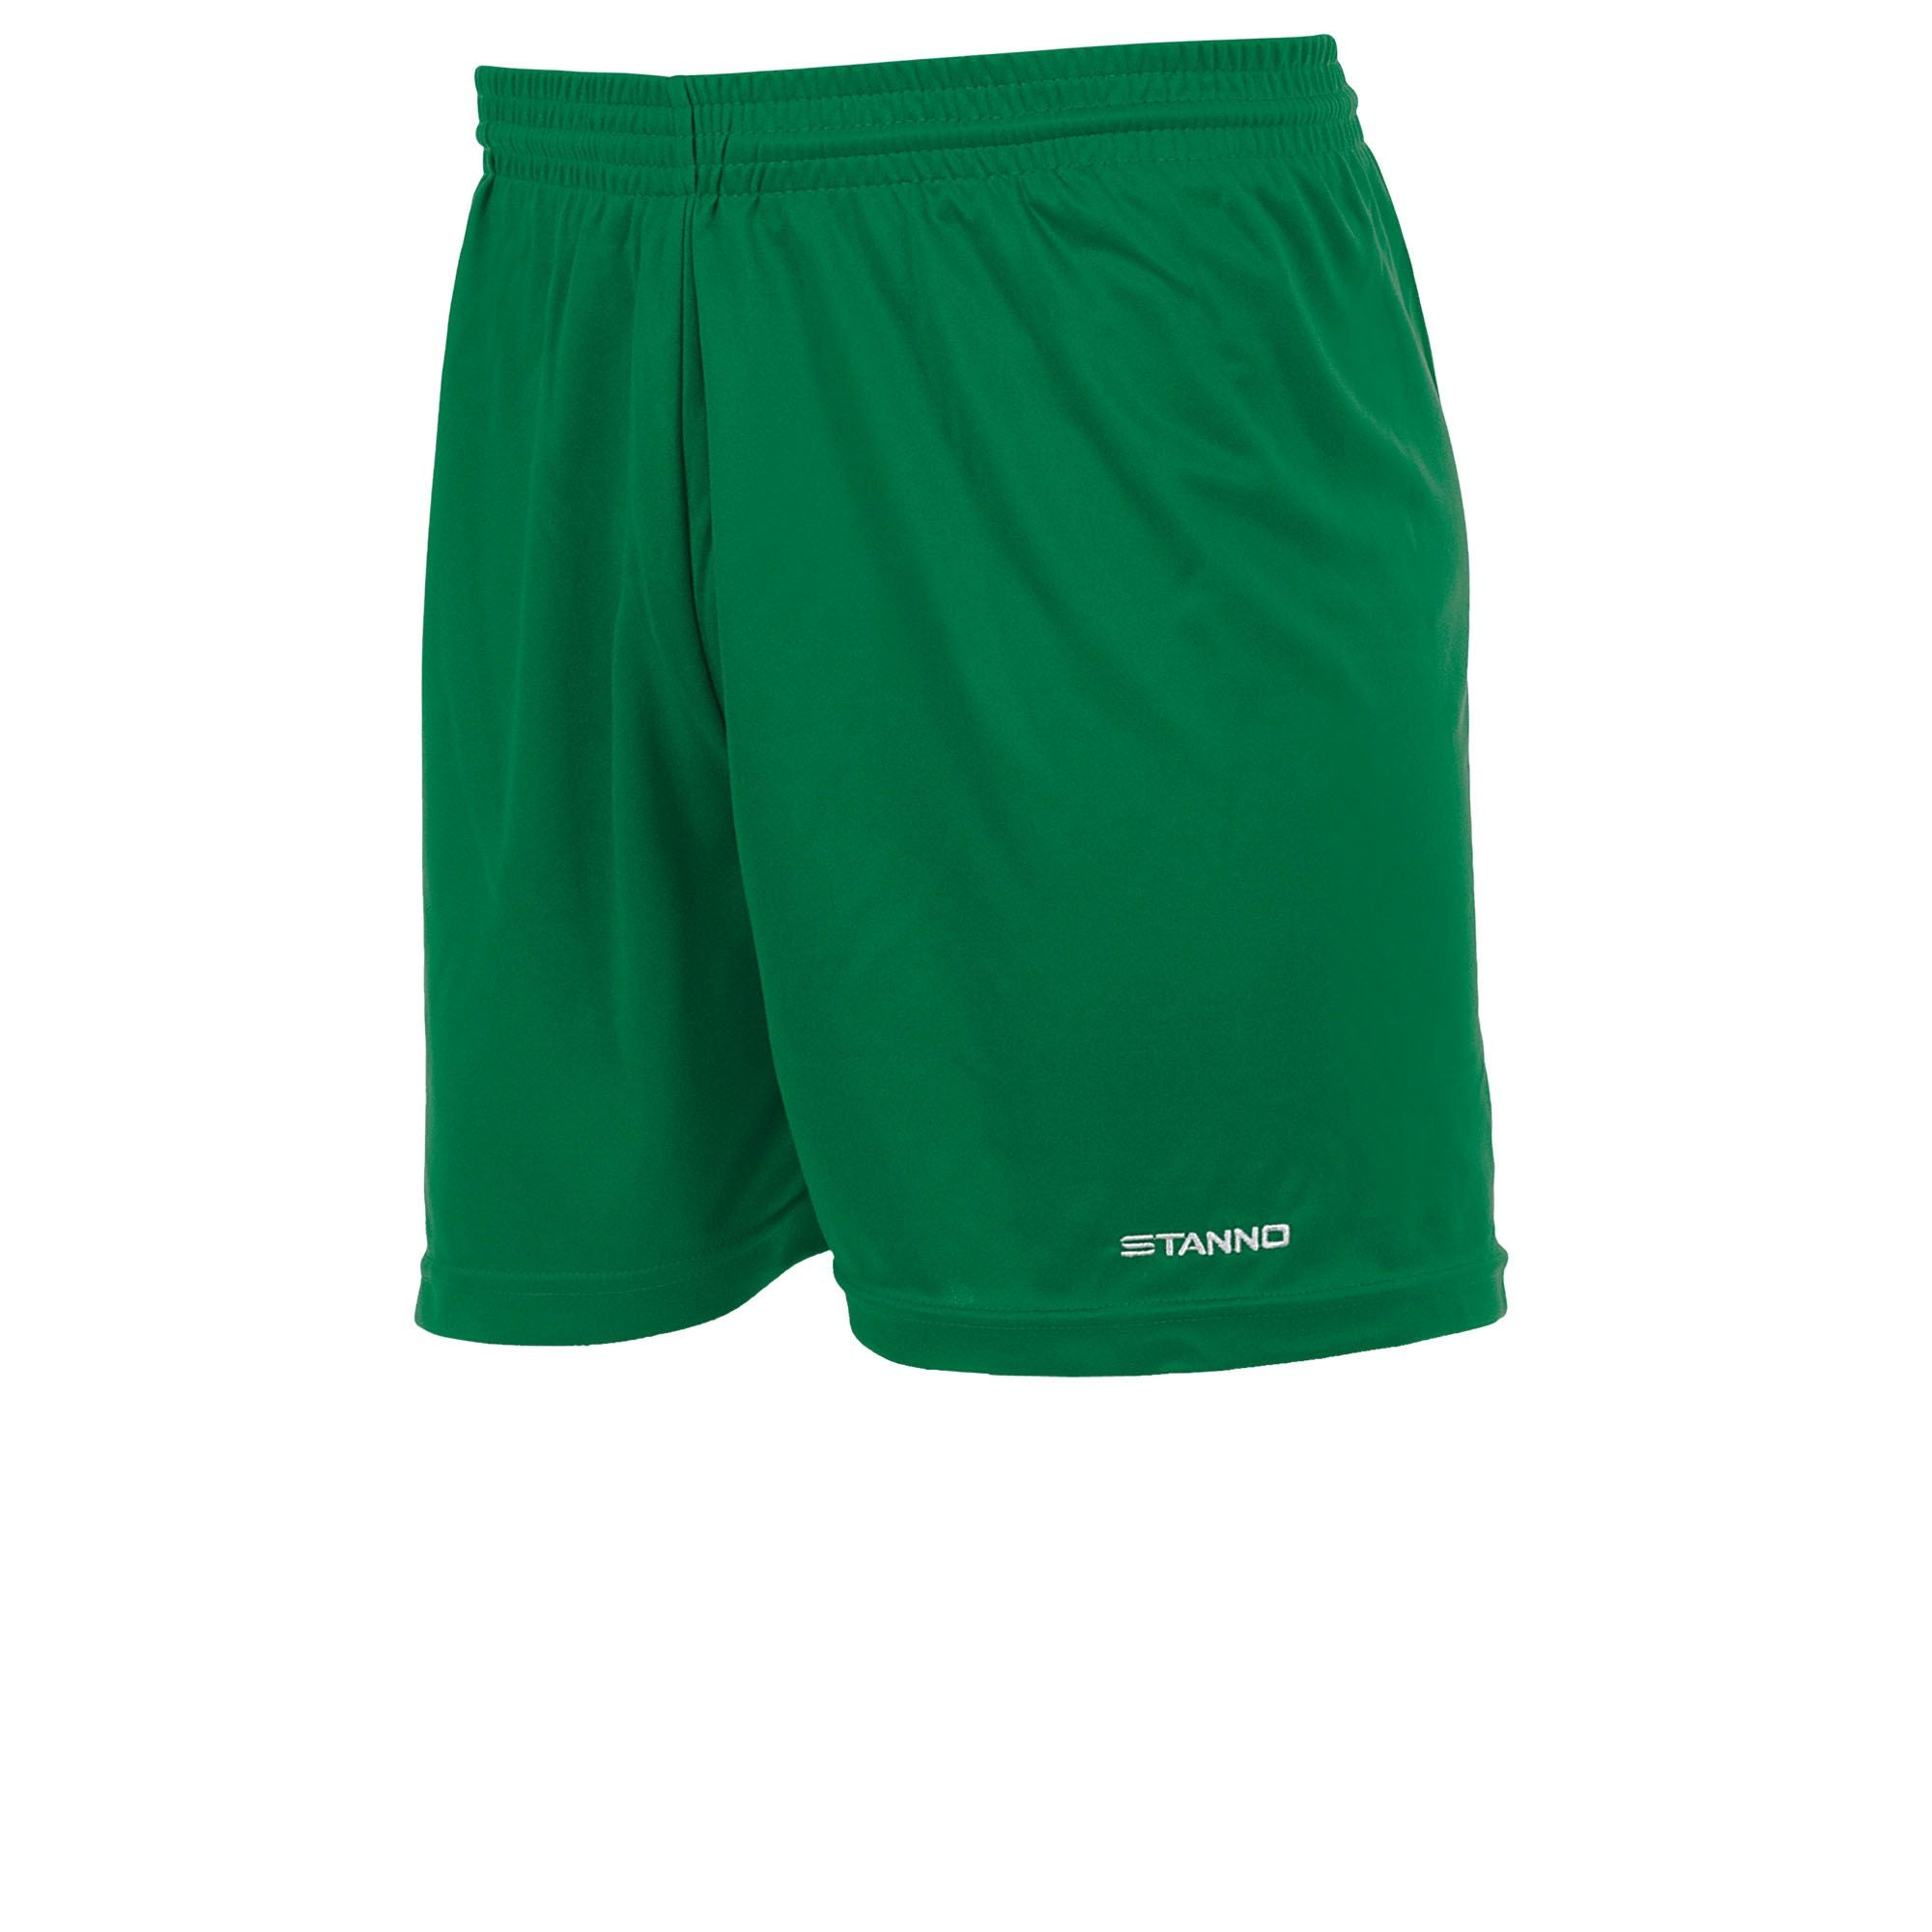 Stanno Club Shorts - Green